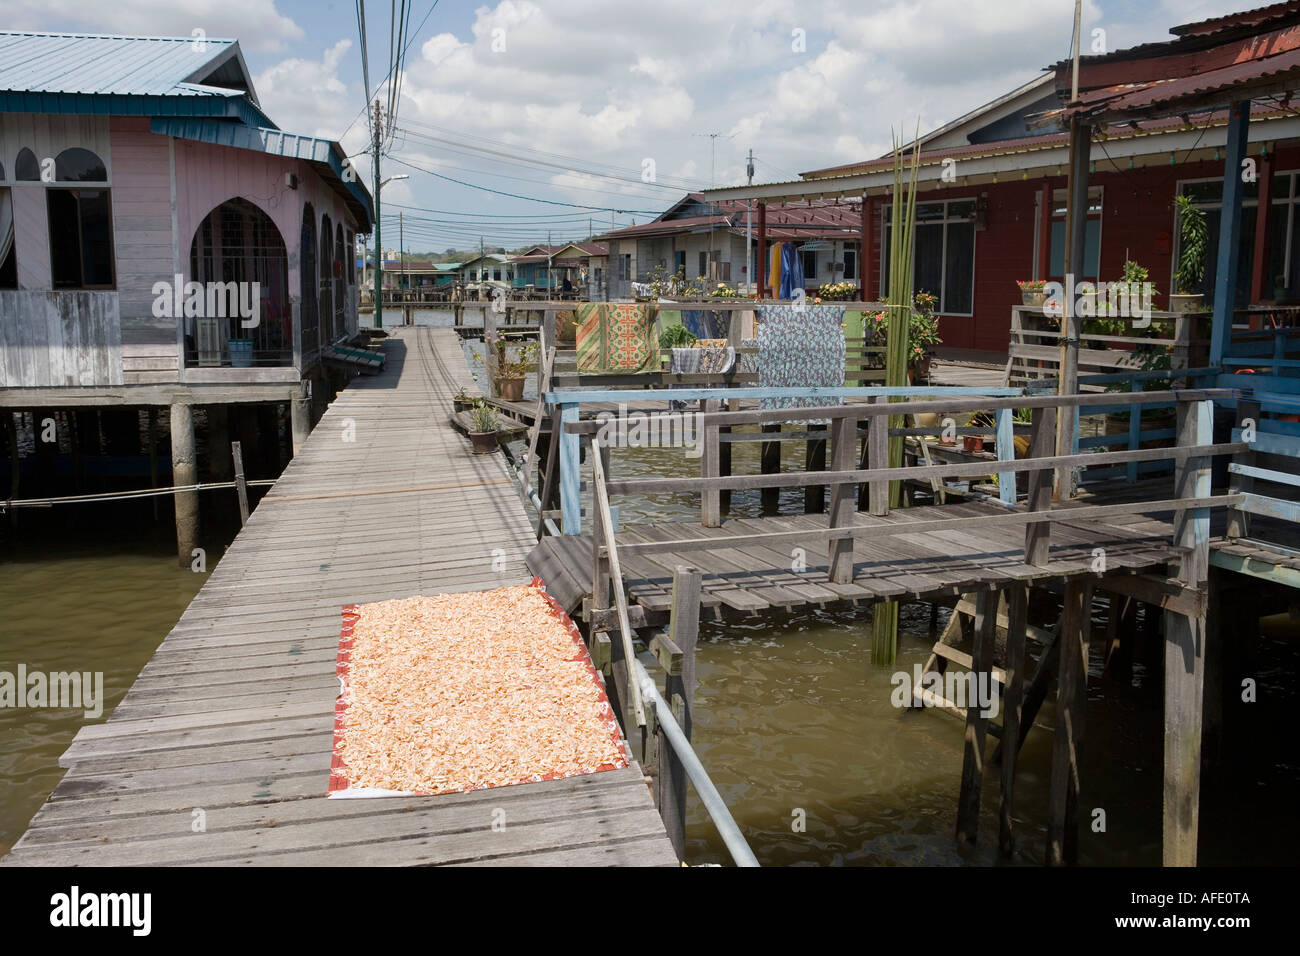 Drying Shrimp, Kampong Ayer Water Village, Bandar Seri Begawan, Brunei Darussalam, Asia - Stock Image